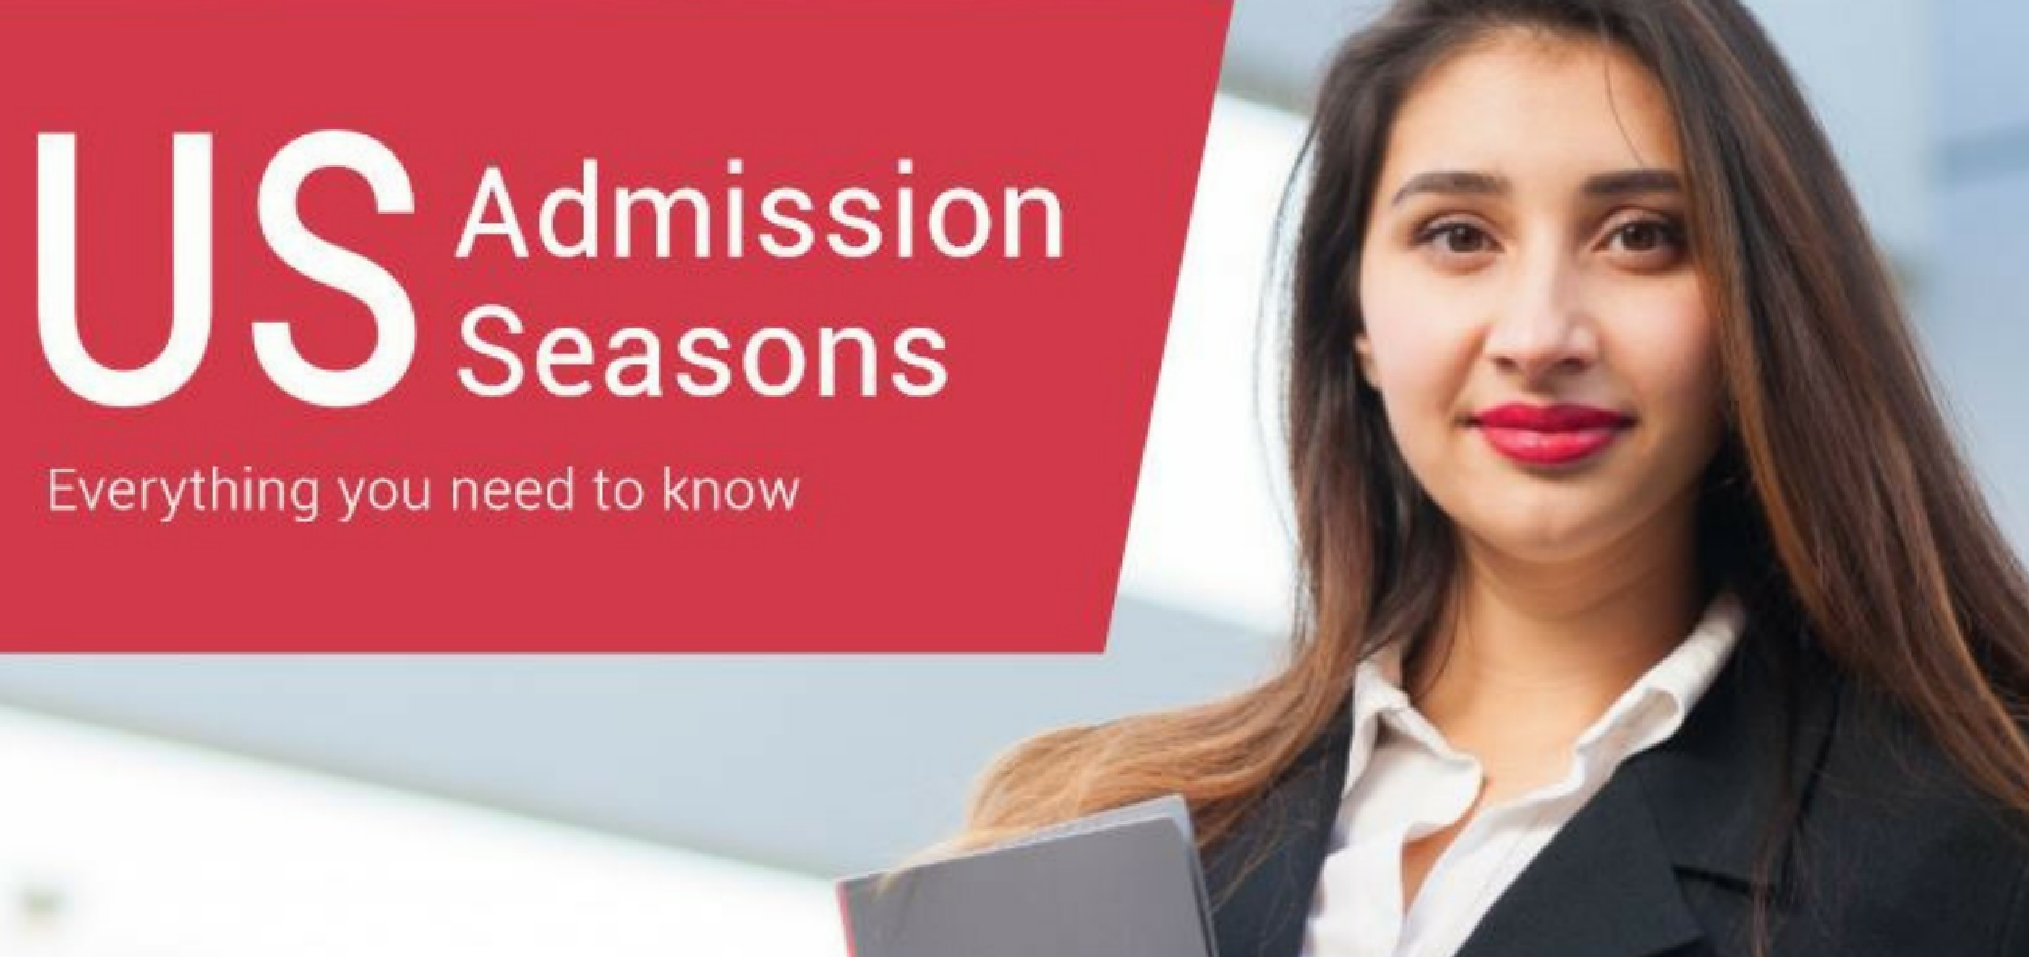 US Admission Seasons Everything you need to know